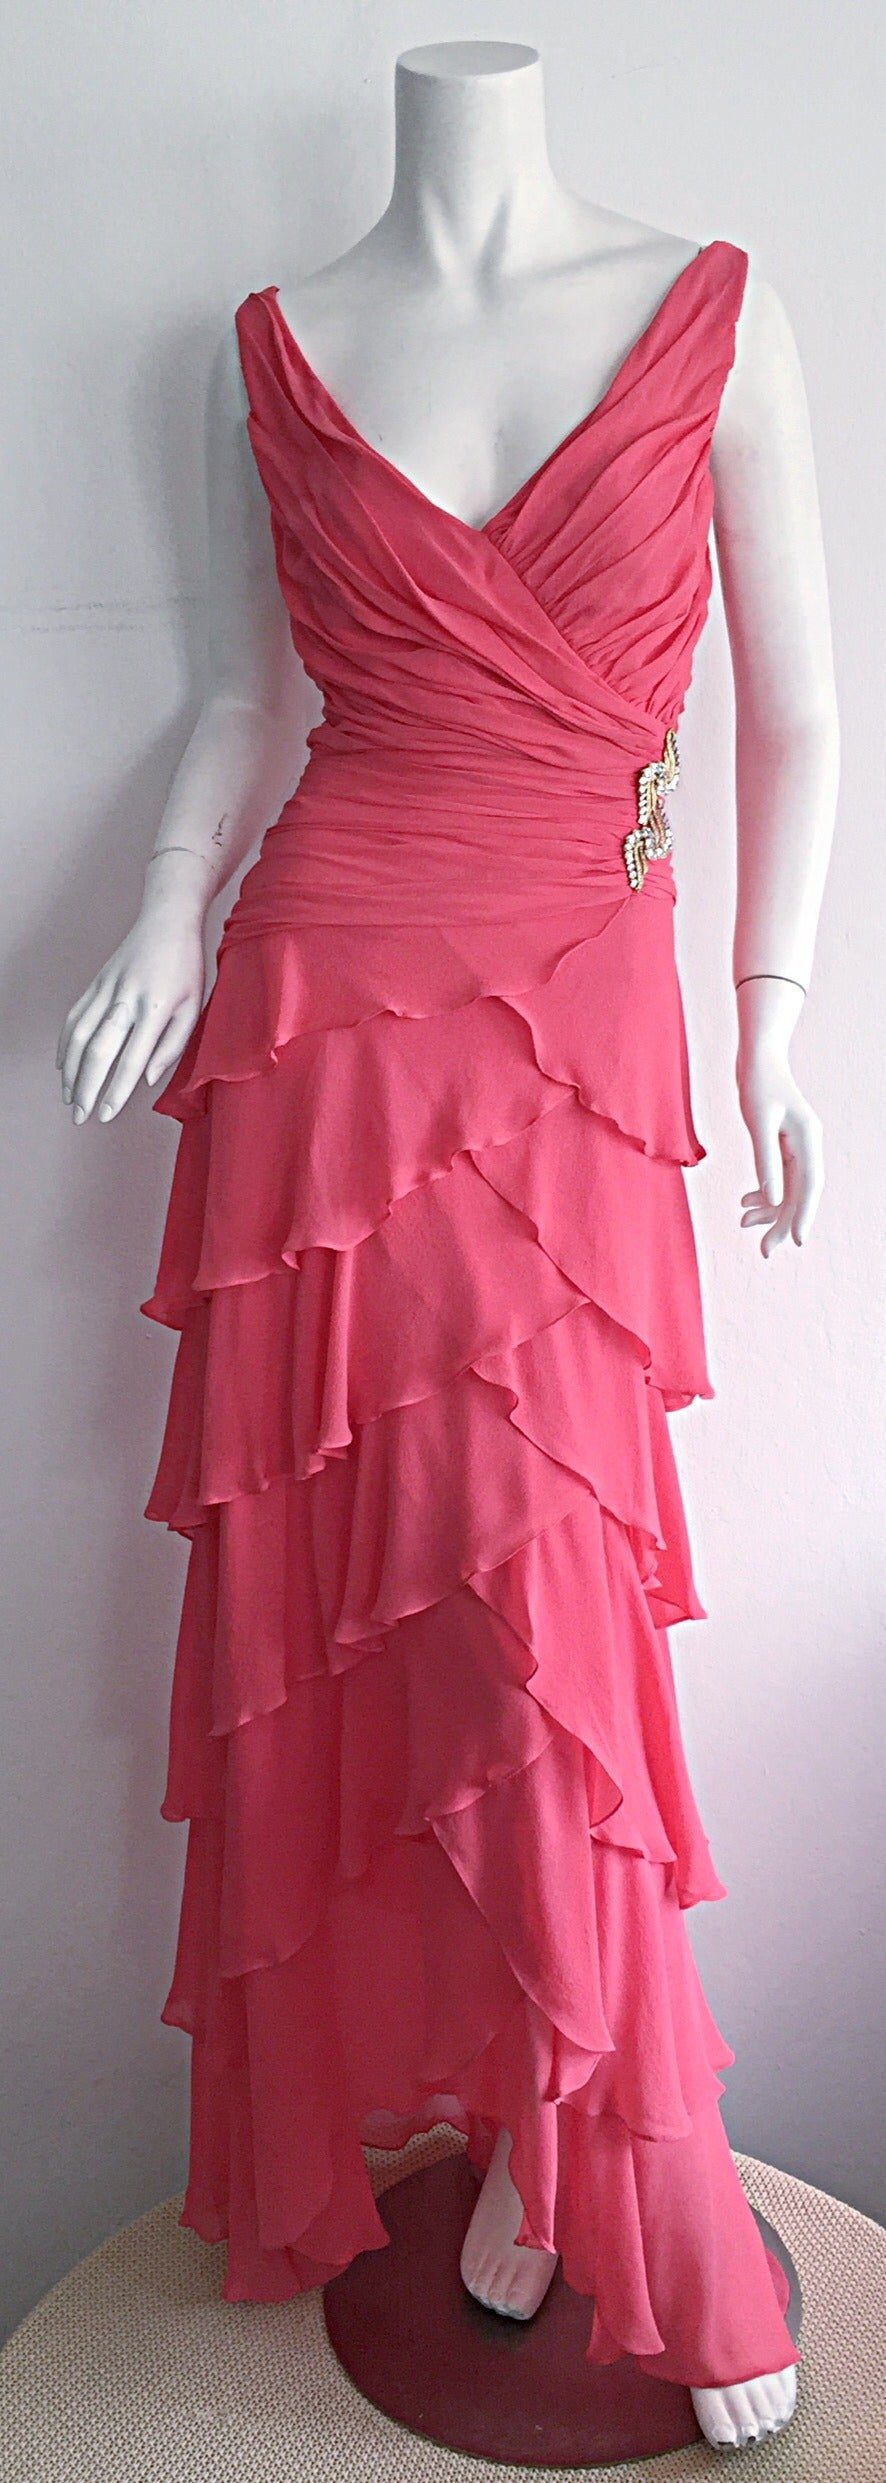 Gorgeous 1990s Tadashi Shoji pink silk chiffon tiered dress! Incredibly flattering bust, with layers of tiers throughout the entire gown, that look great with movement! Rhinestone details at side waist. Asymmetrical hem. Looks beautiful on! In great